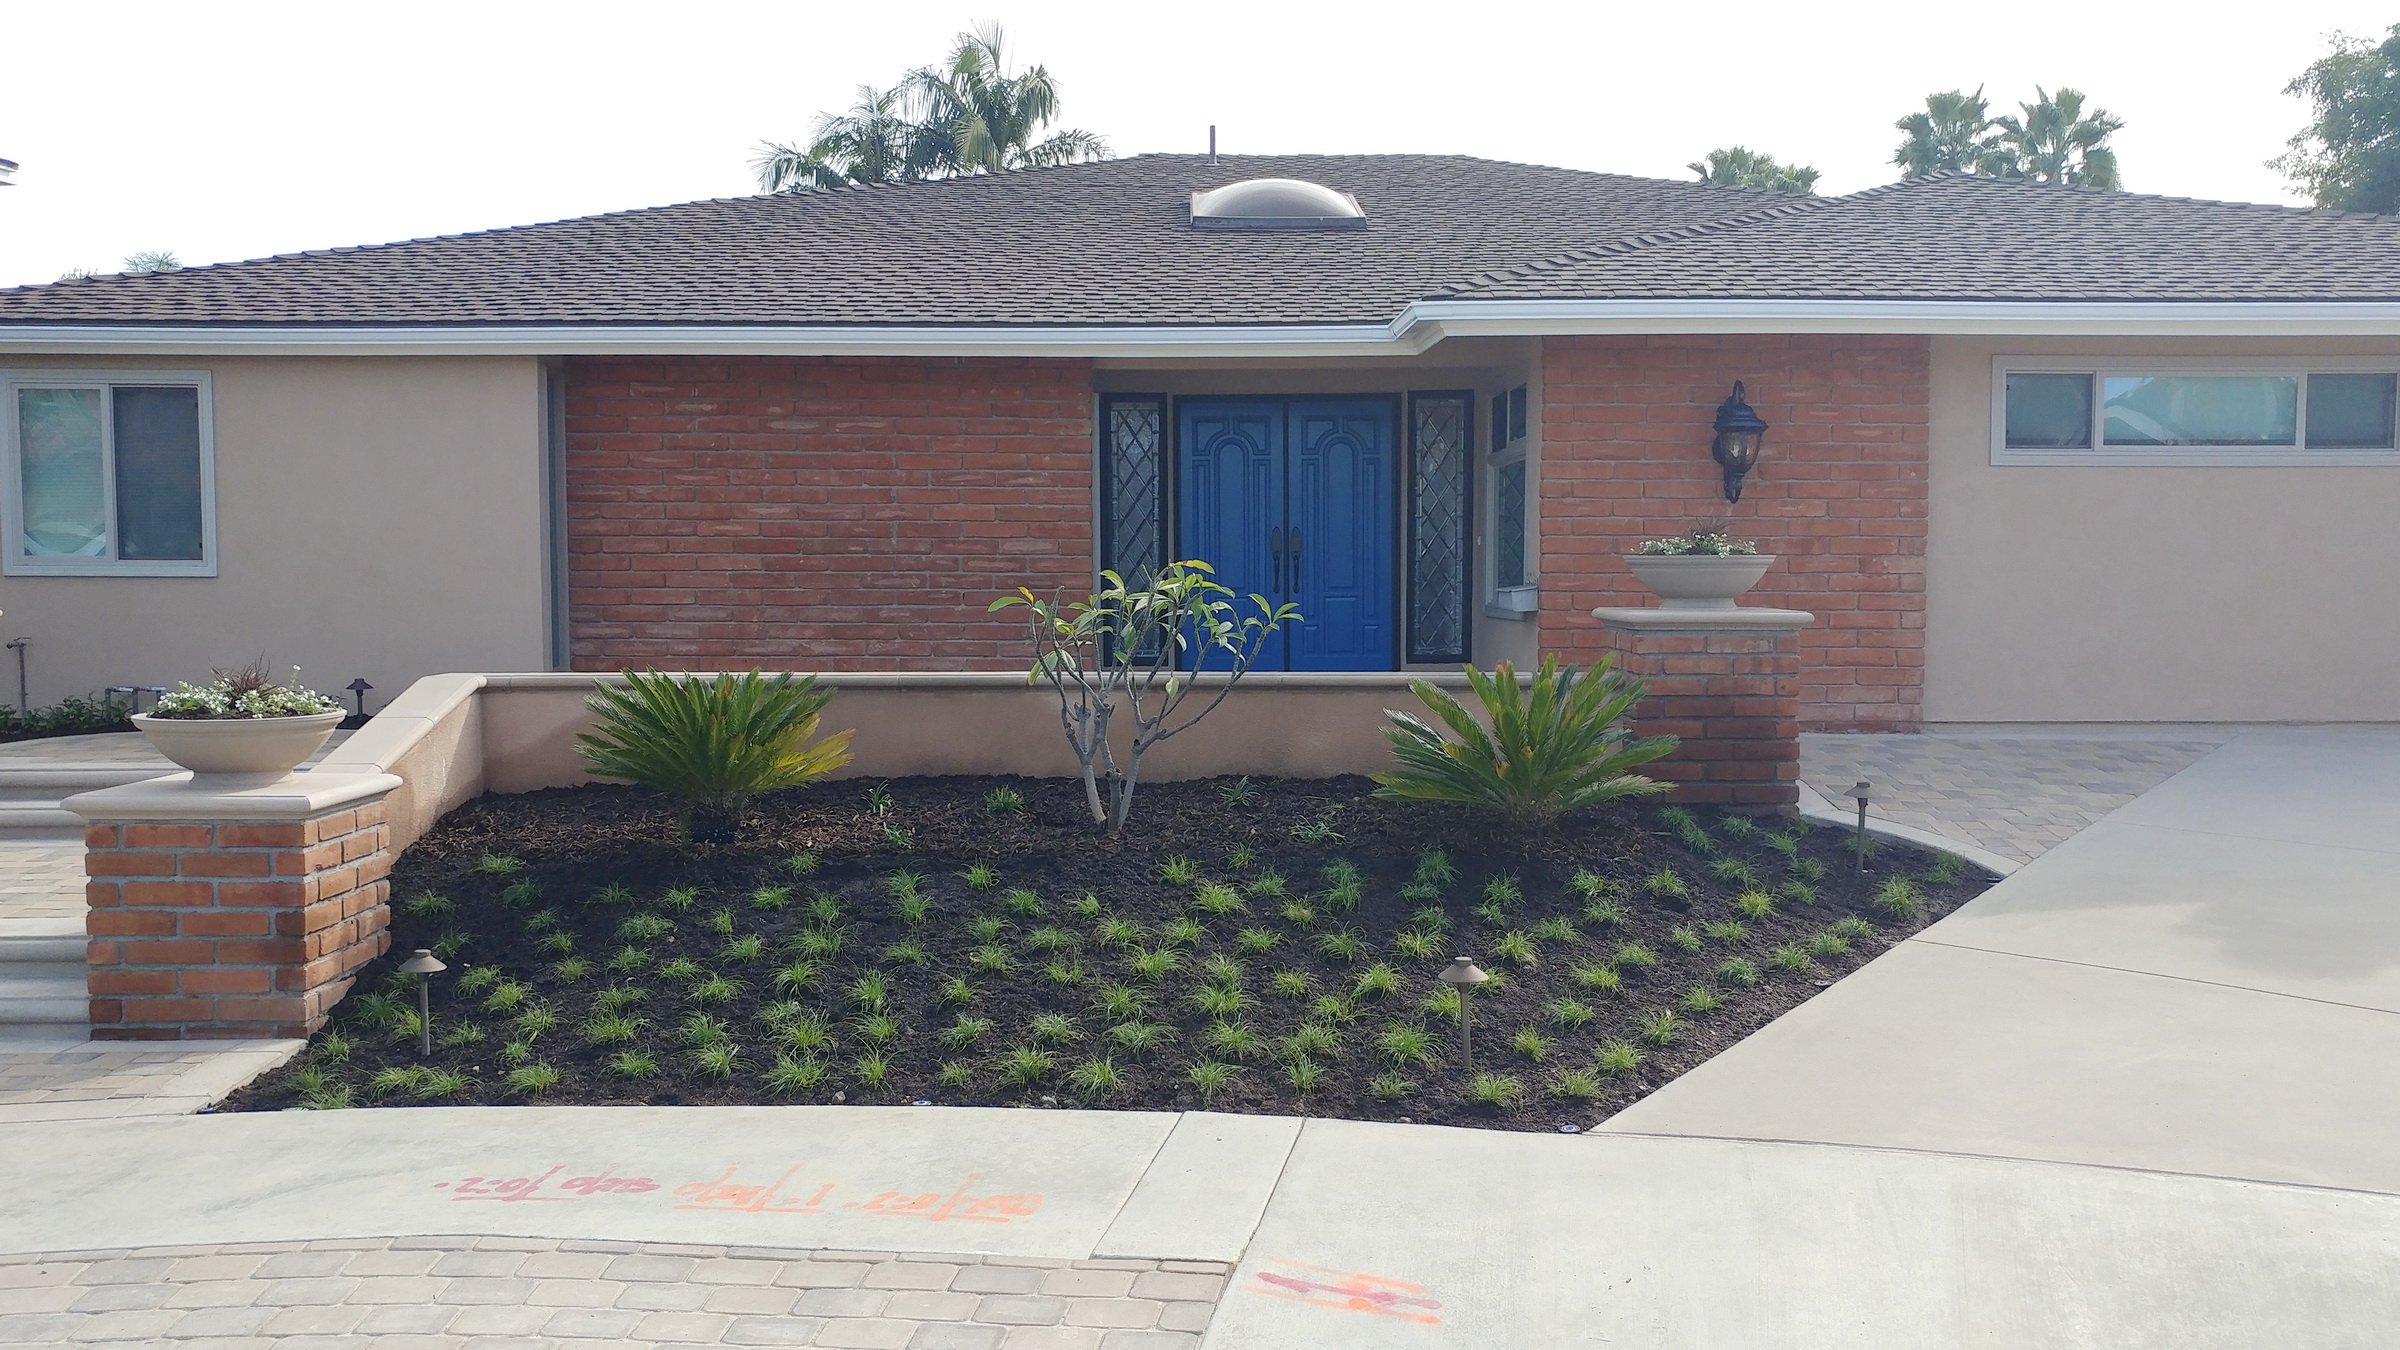 Refreshed entry with new landscape and hardscape.